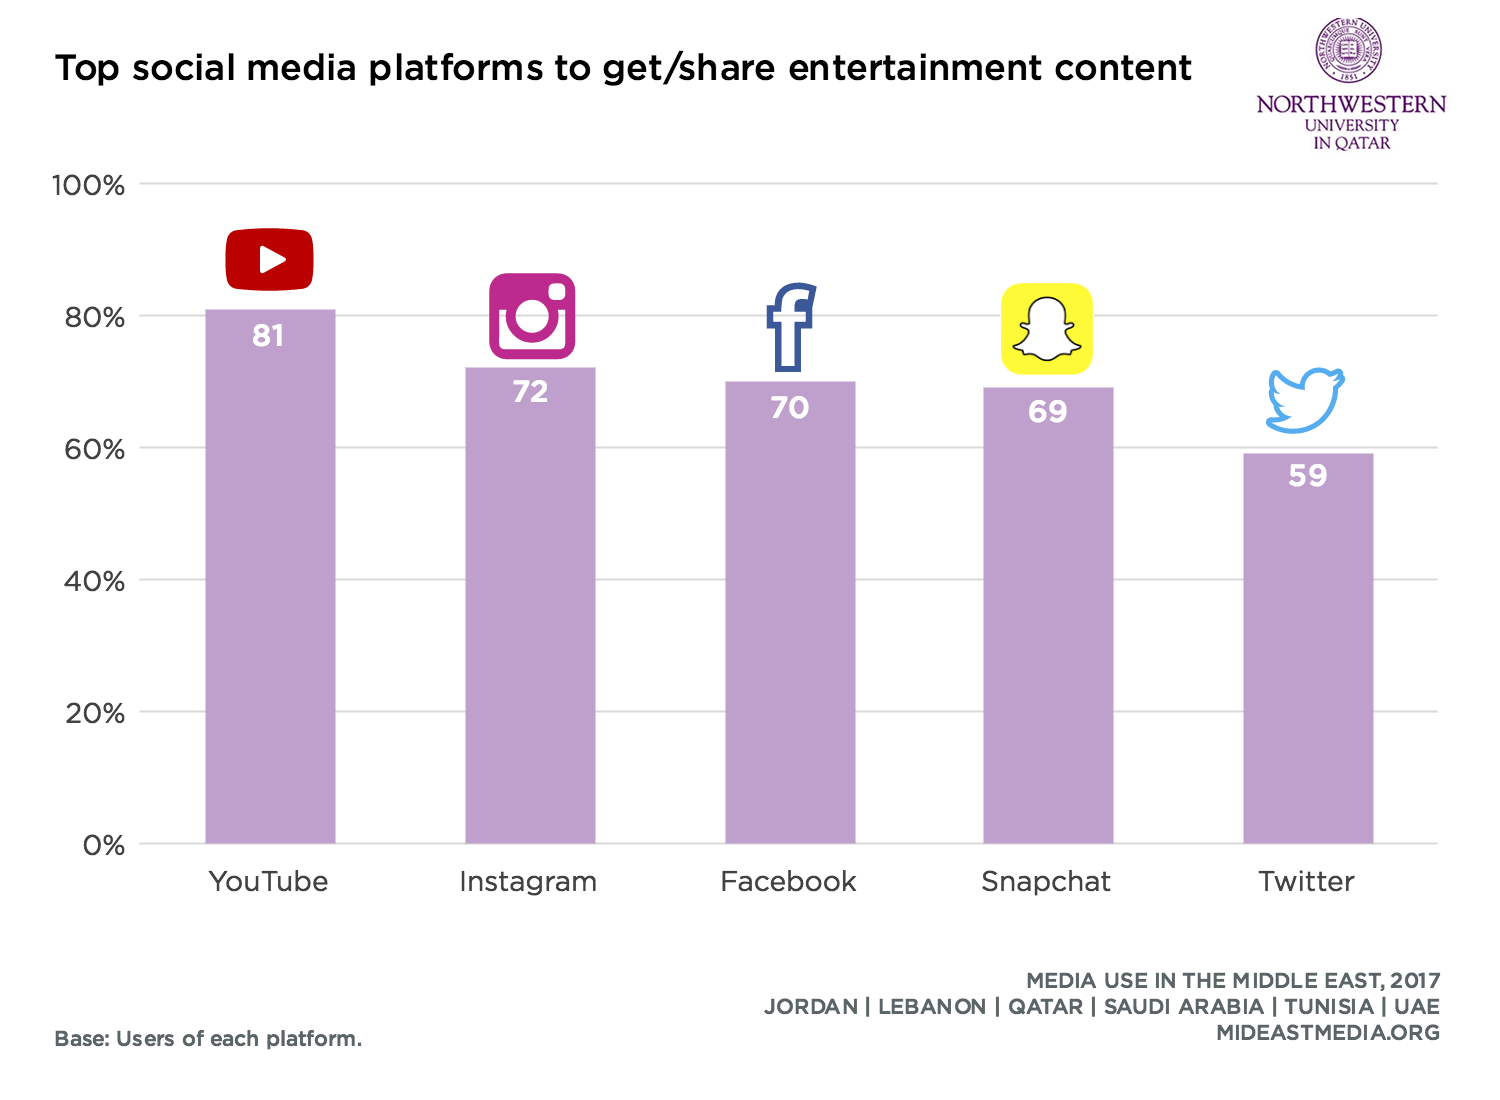 For Getting & Sharing Entertainment Content in the Middle East YouTube Comes First, 2017 | Northwestern University in Qatar